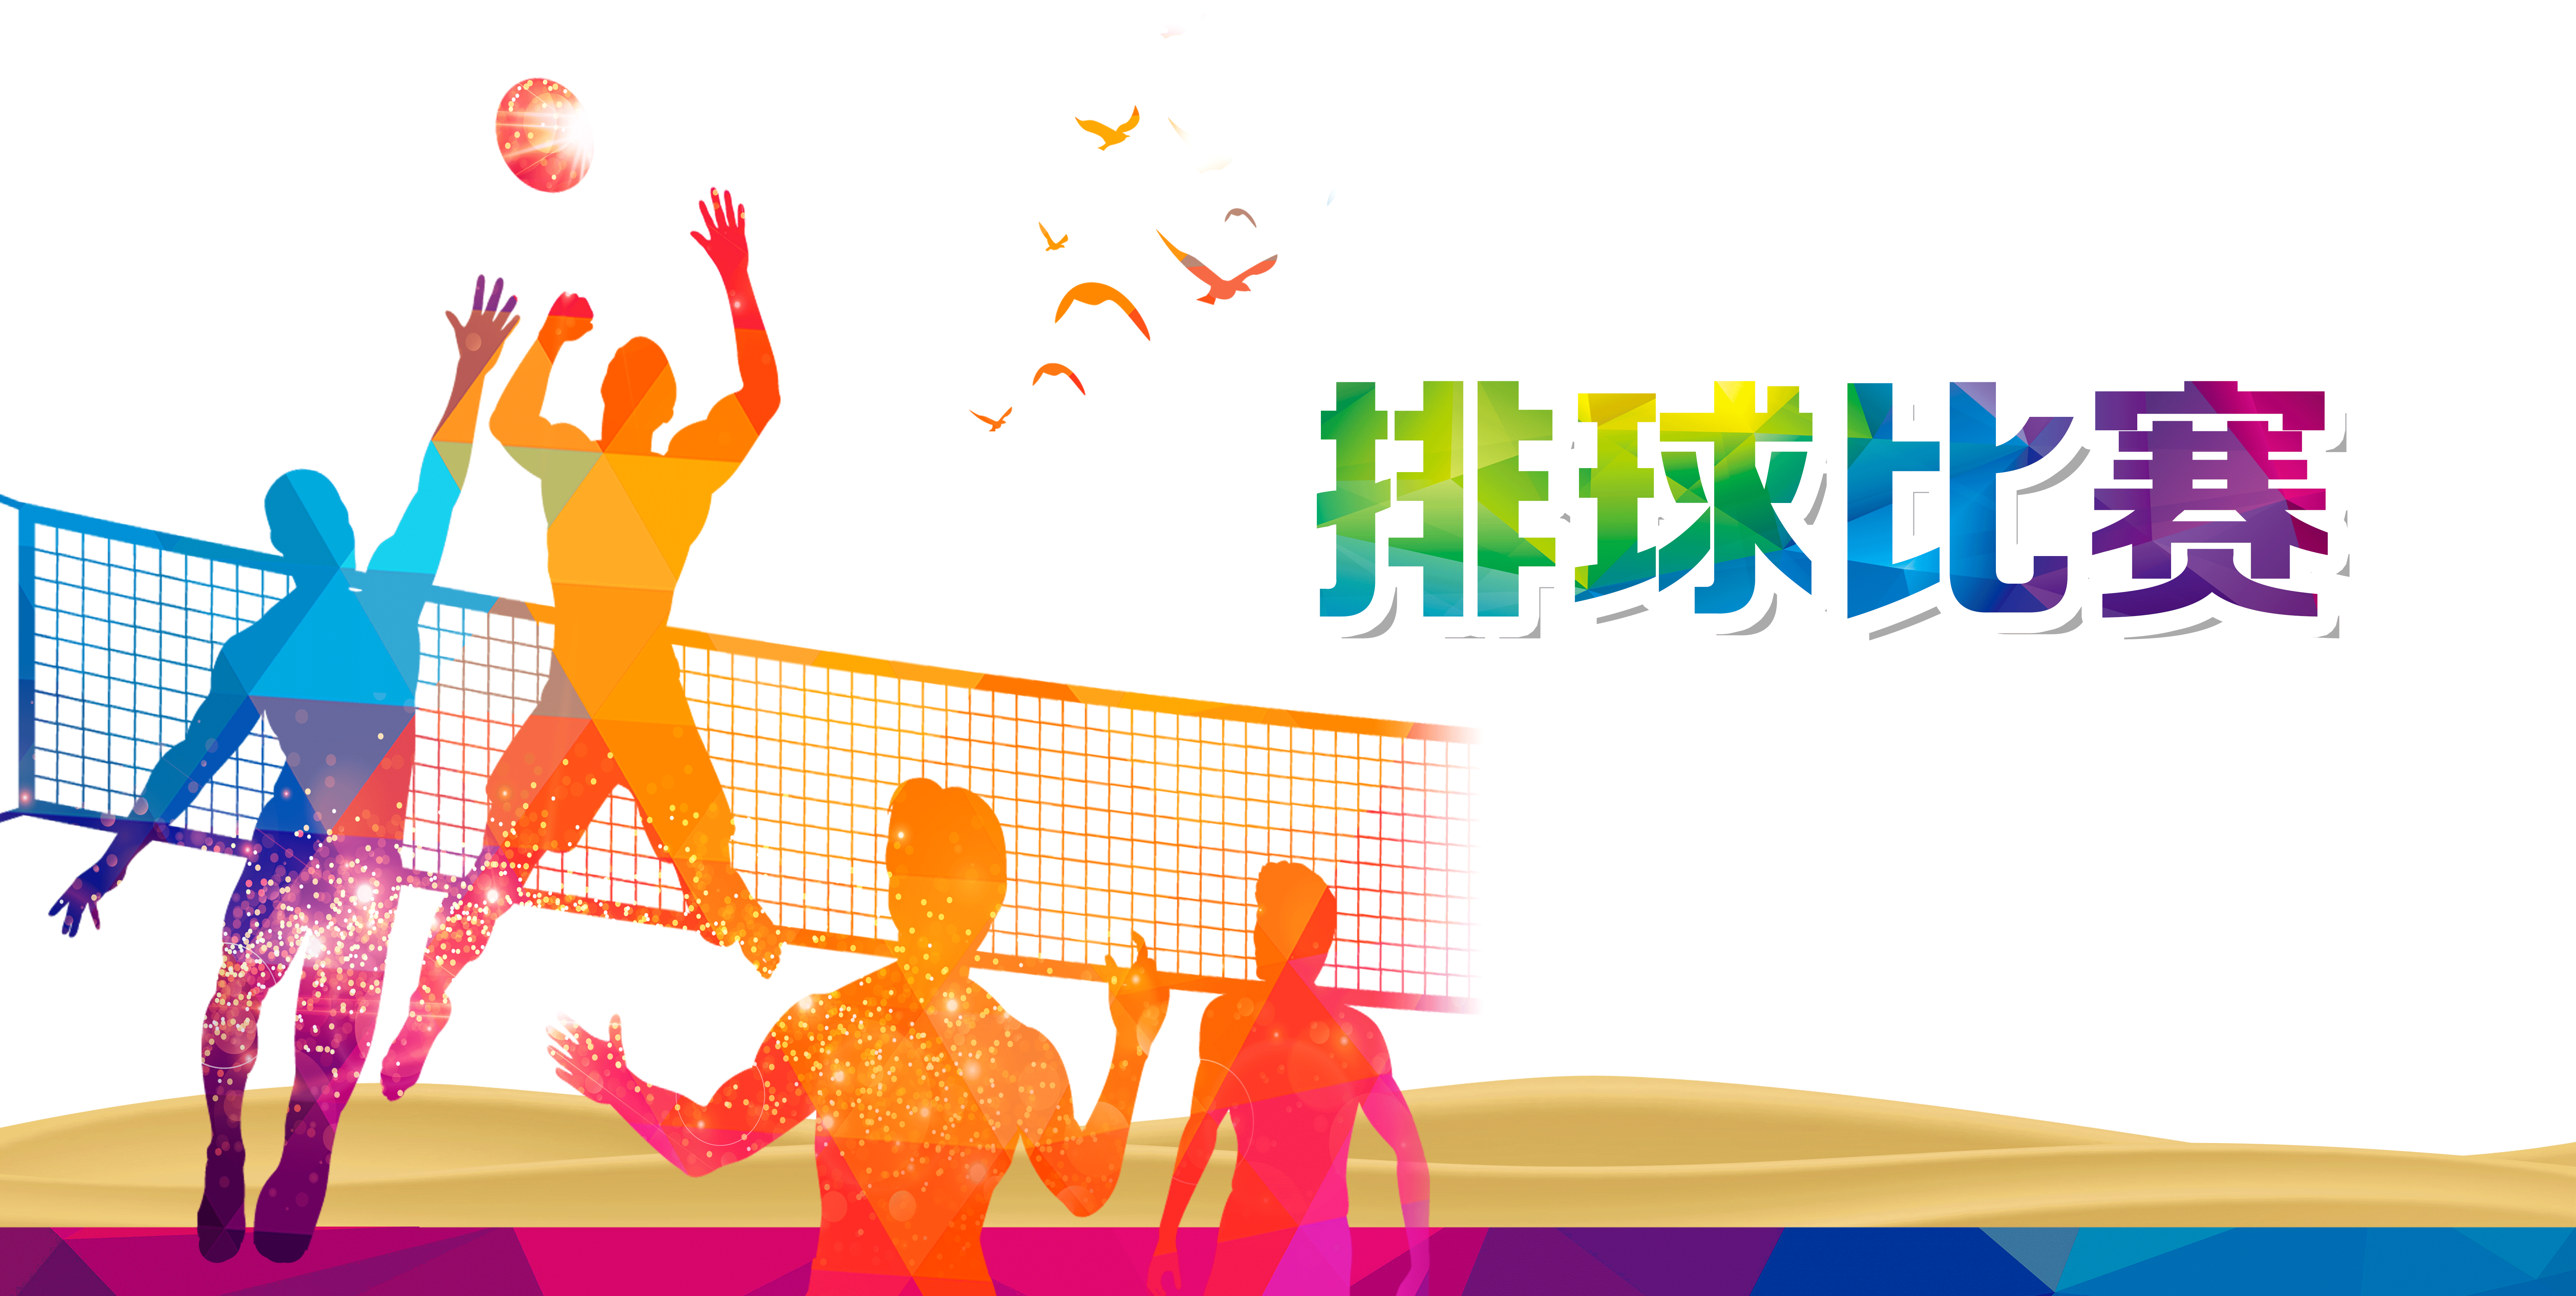 Sport poster game design. Volleyball clipart volleyball match